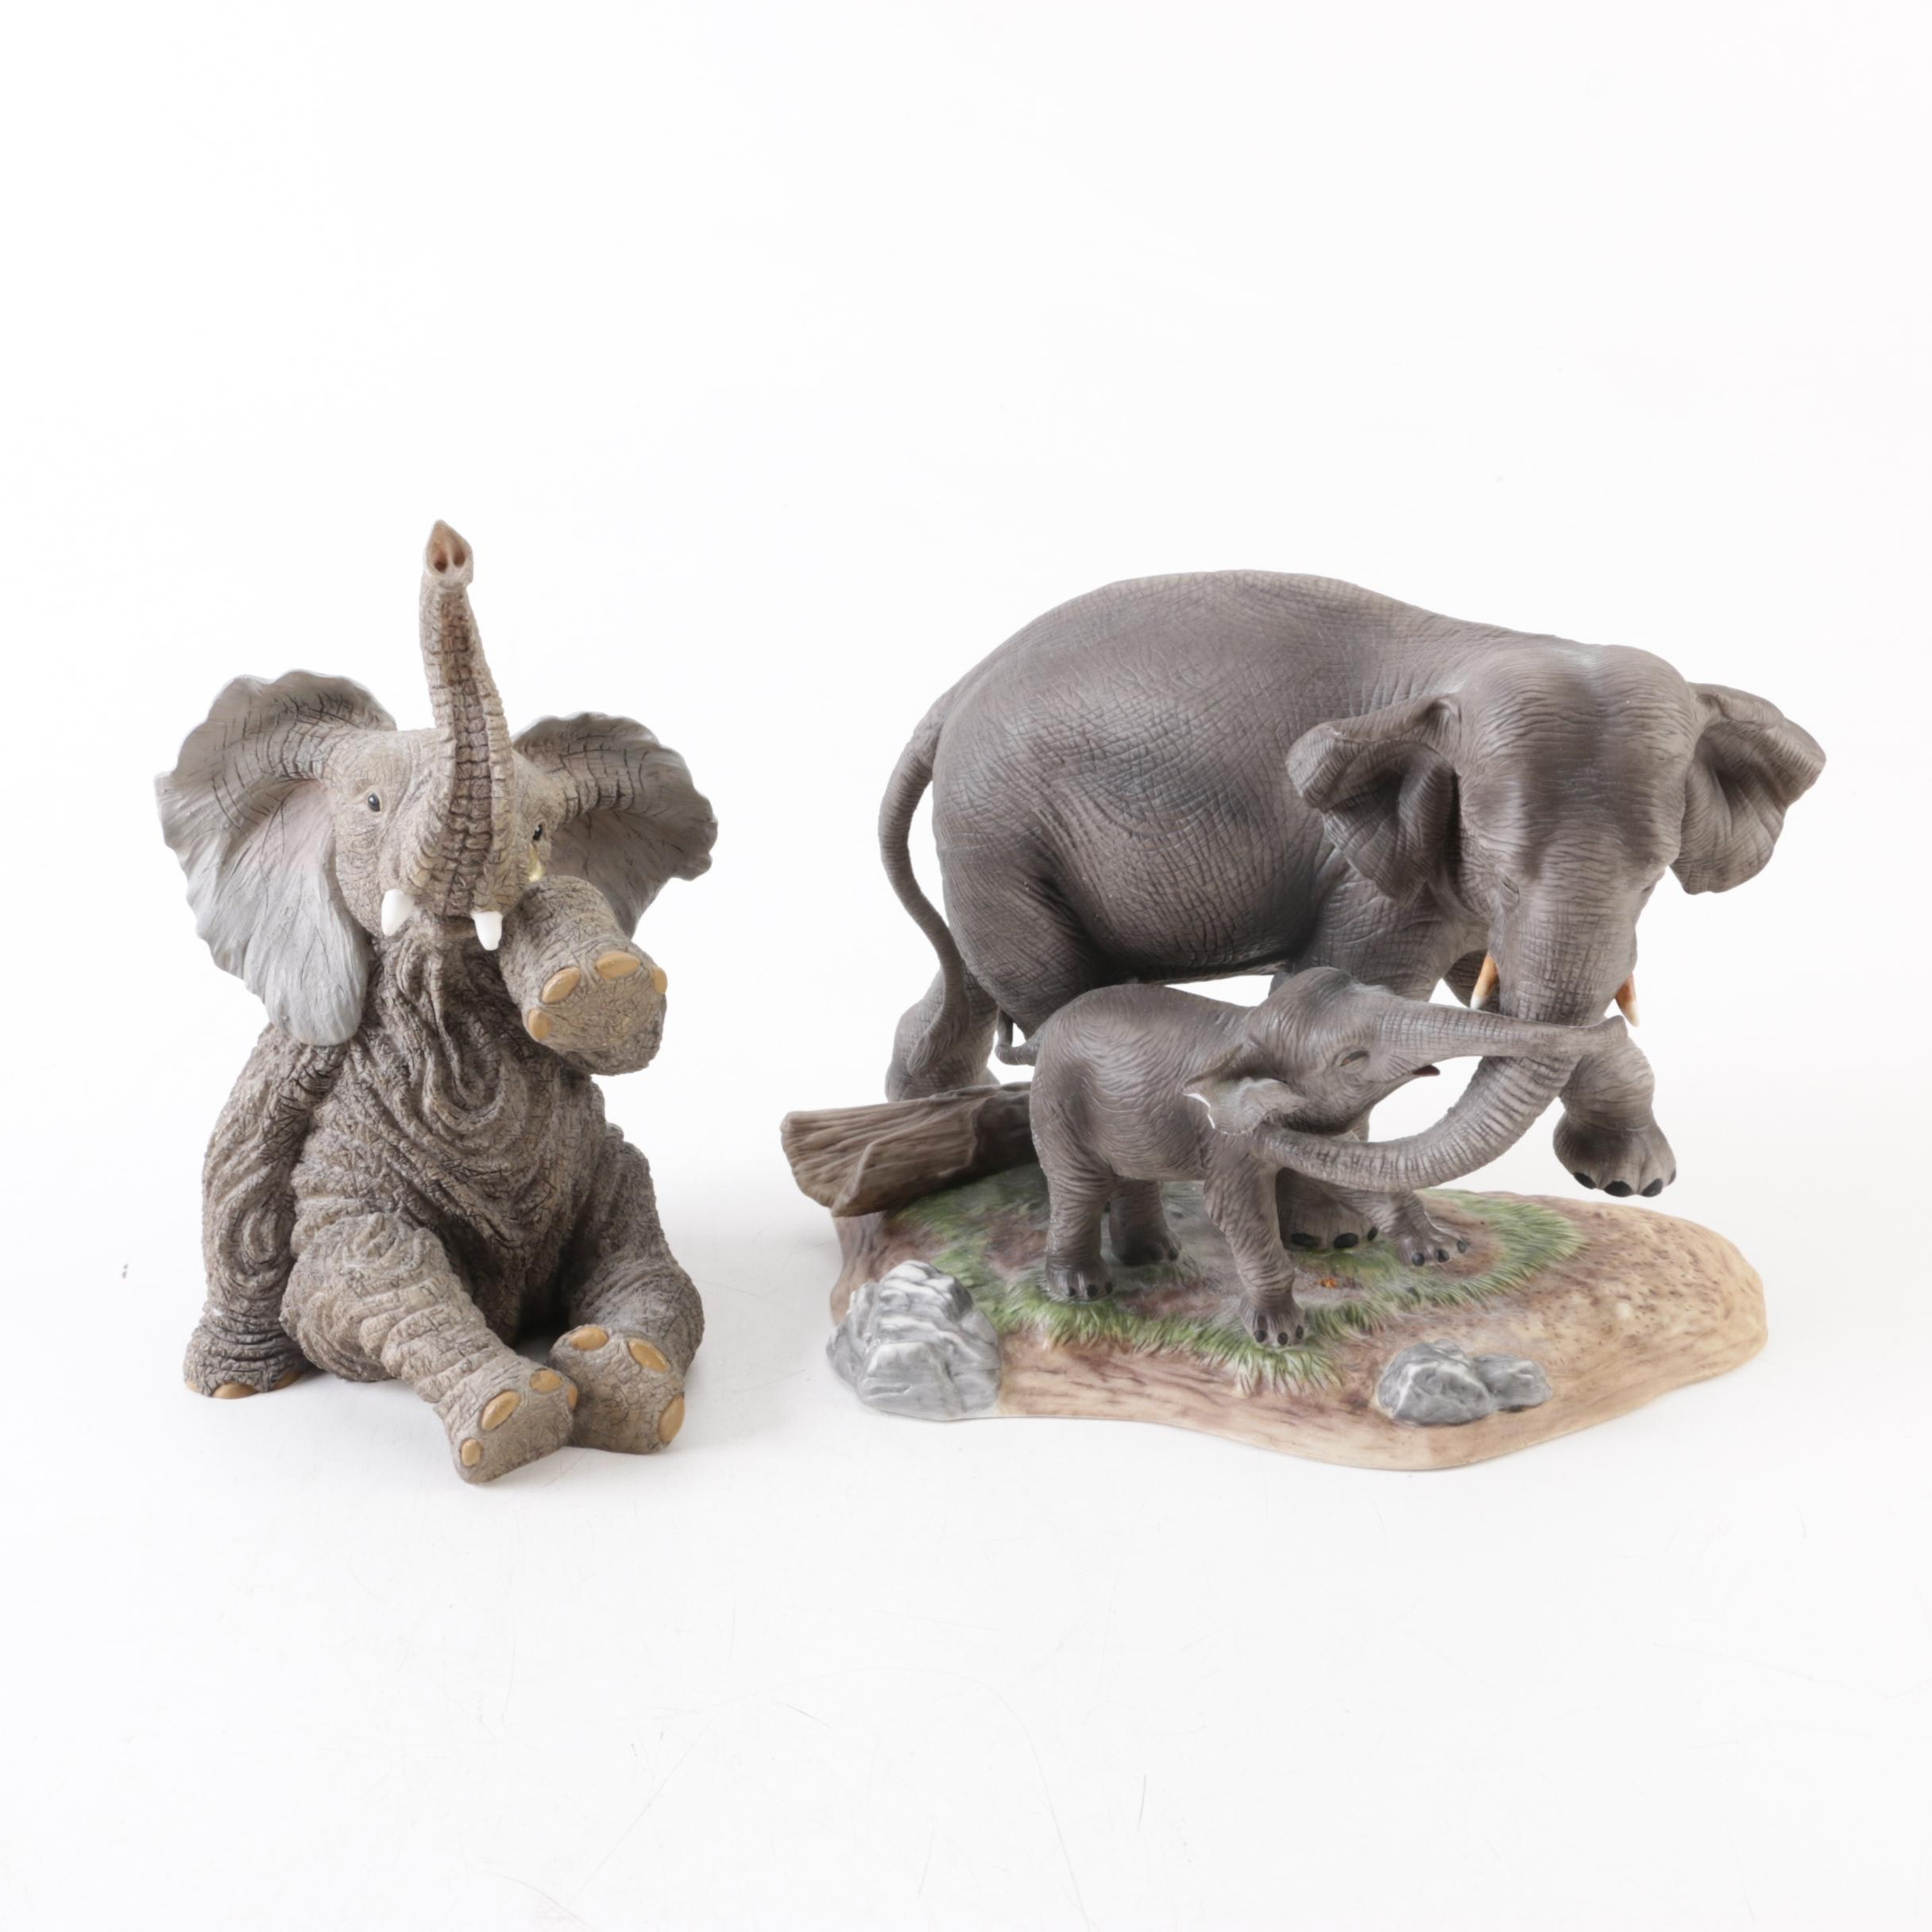 Lenox Porcelain Elephant Figurines